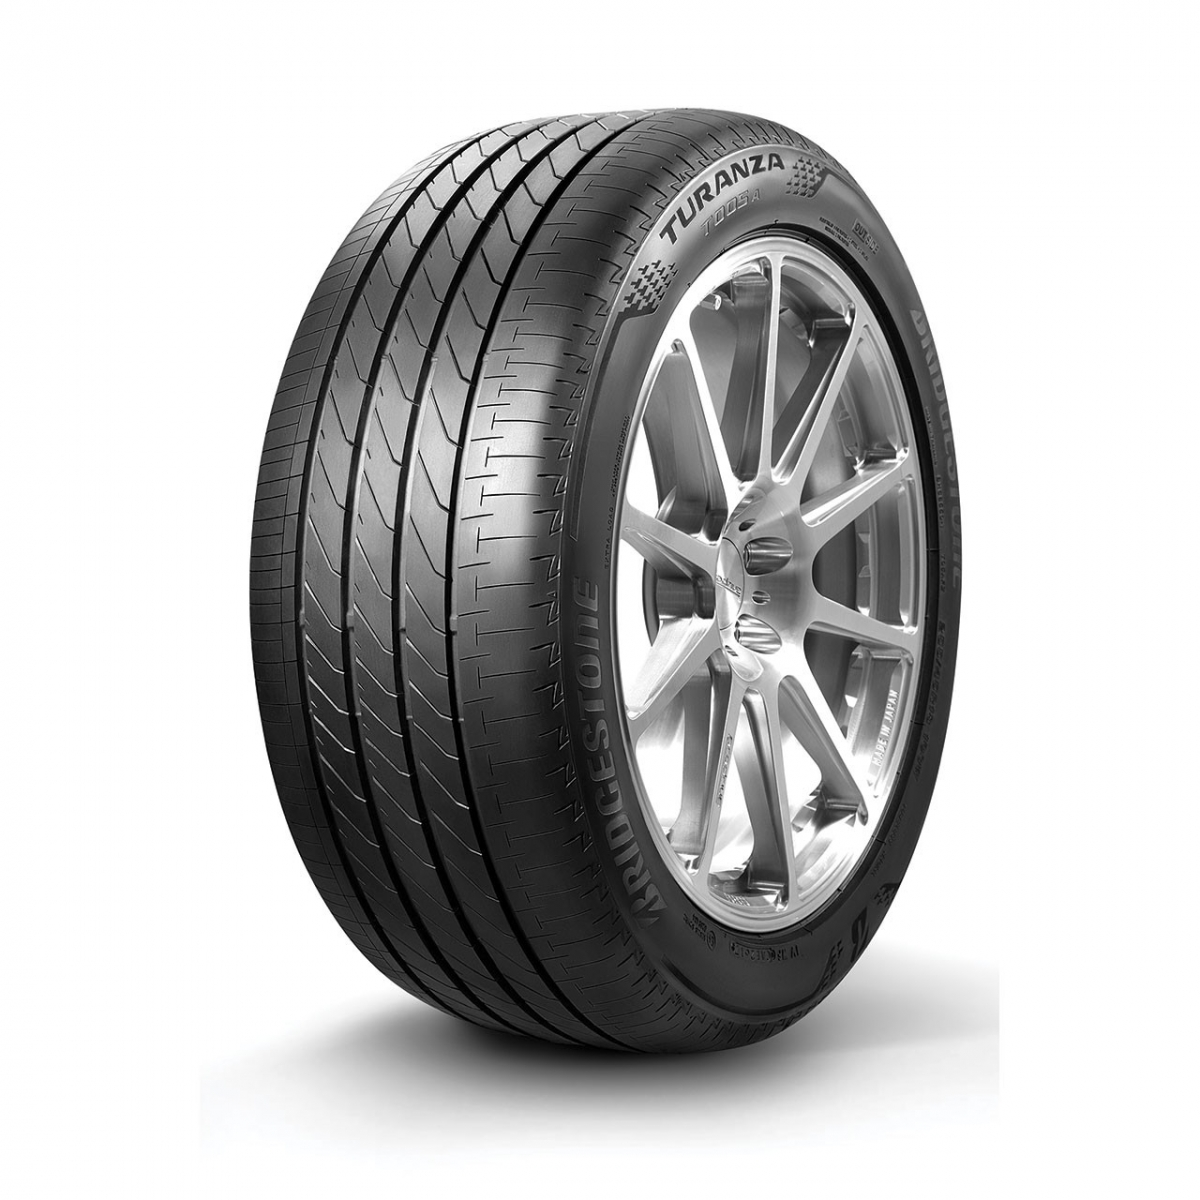 BRIDGESTONE 235/45R18 98W Turanza T005A (Brand Of Japan/Made In Thailand) * Ô Tô Hyundai Kona 2.0 AT Đặc Biệt * Kona 1.6 Turbo 2018-2019